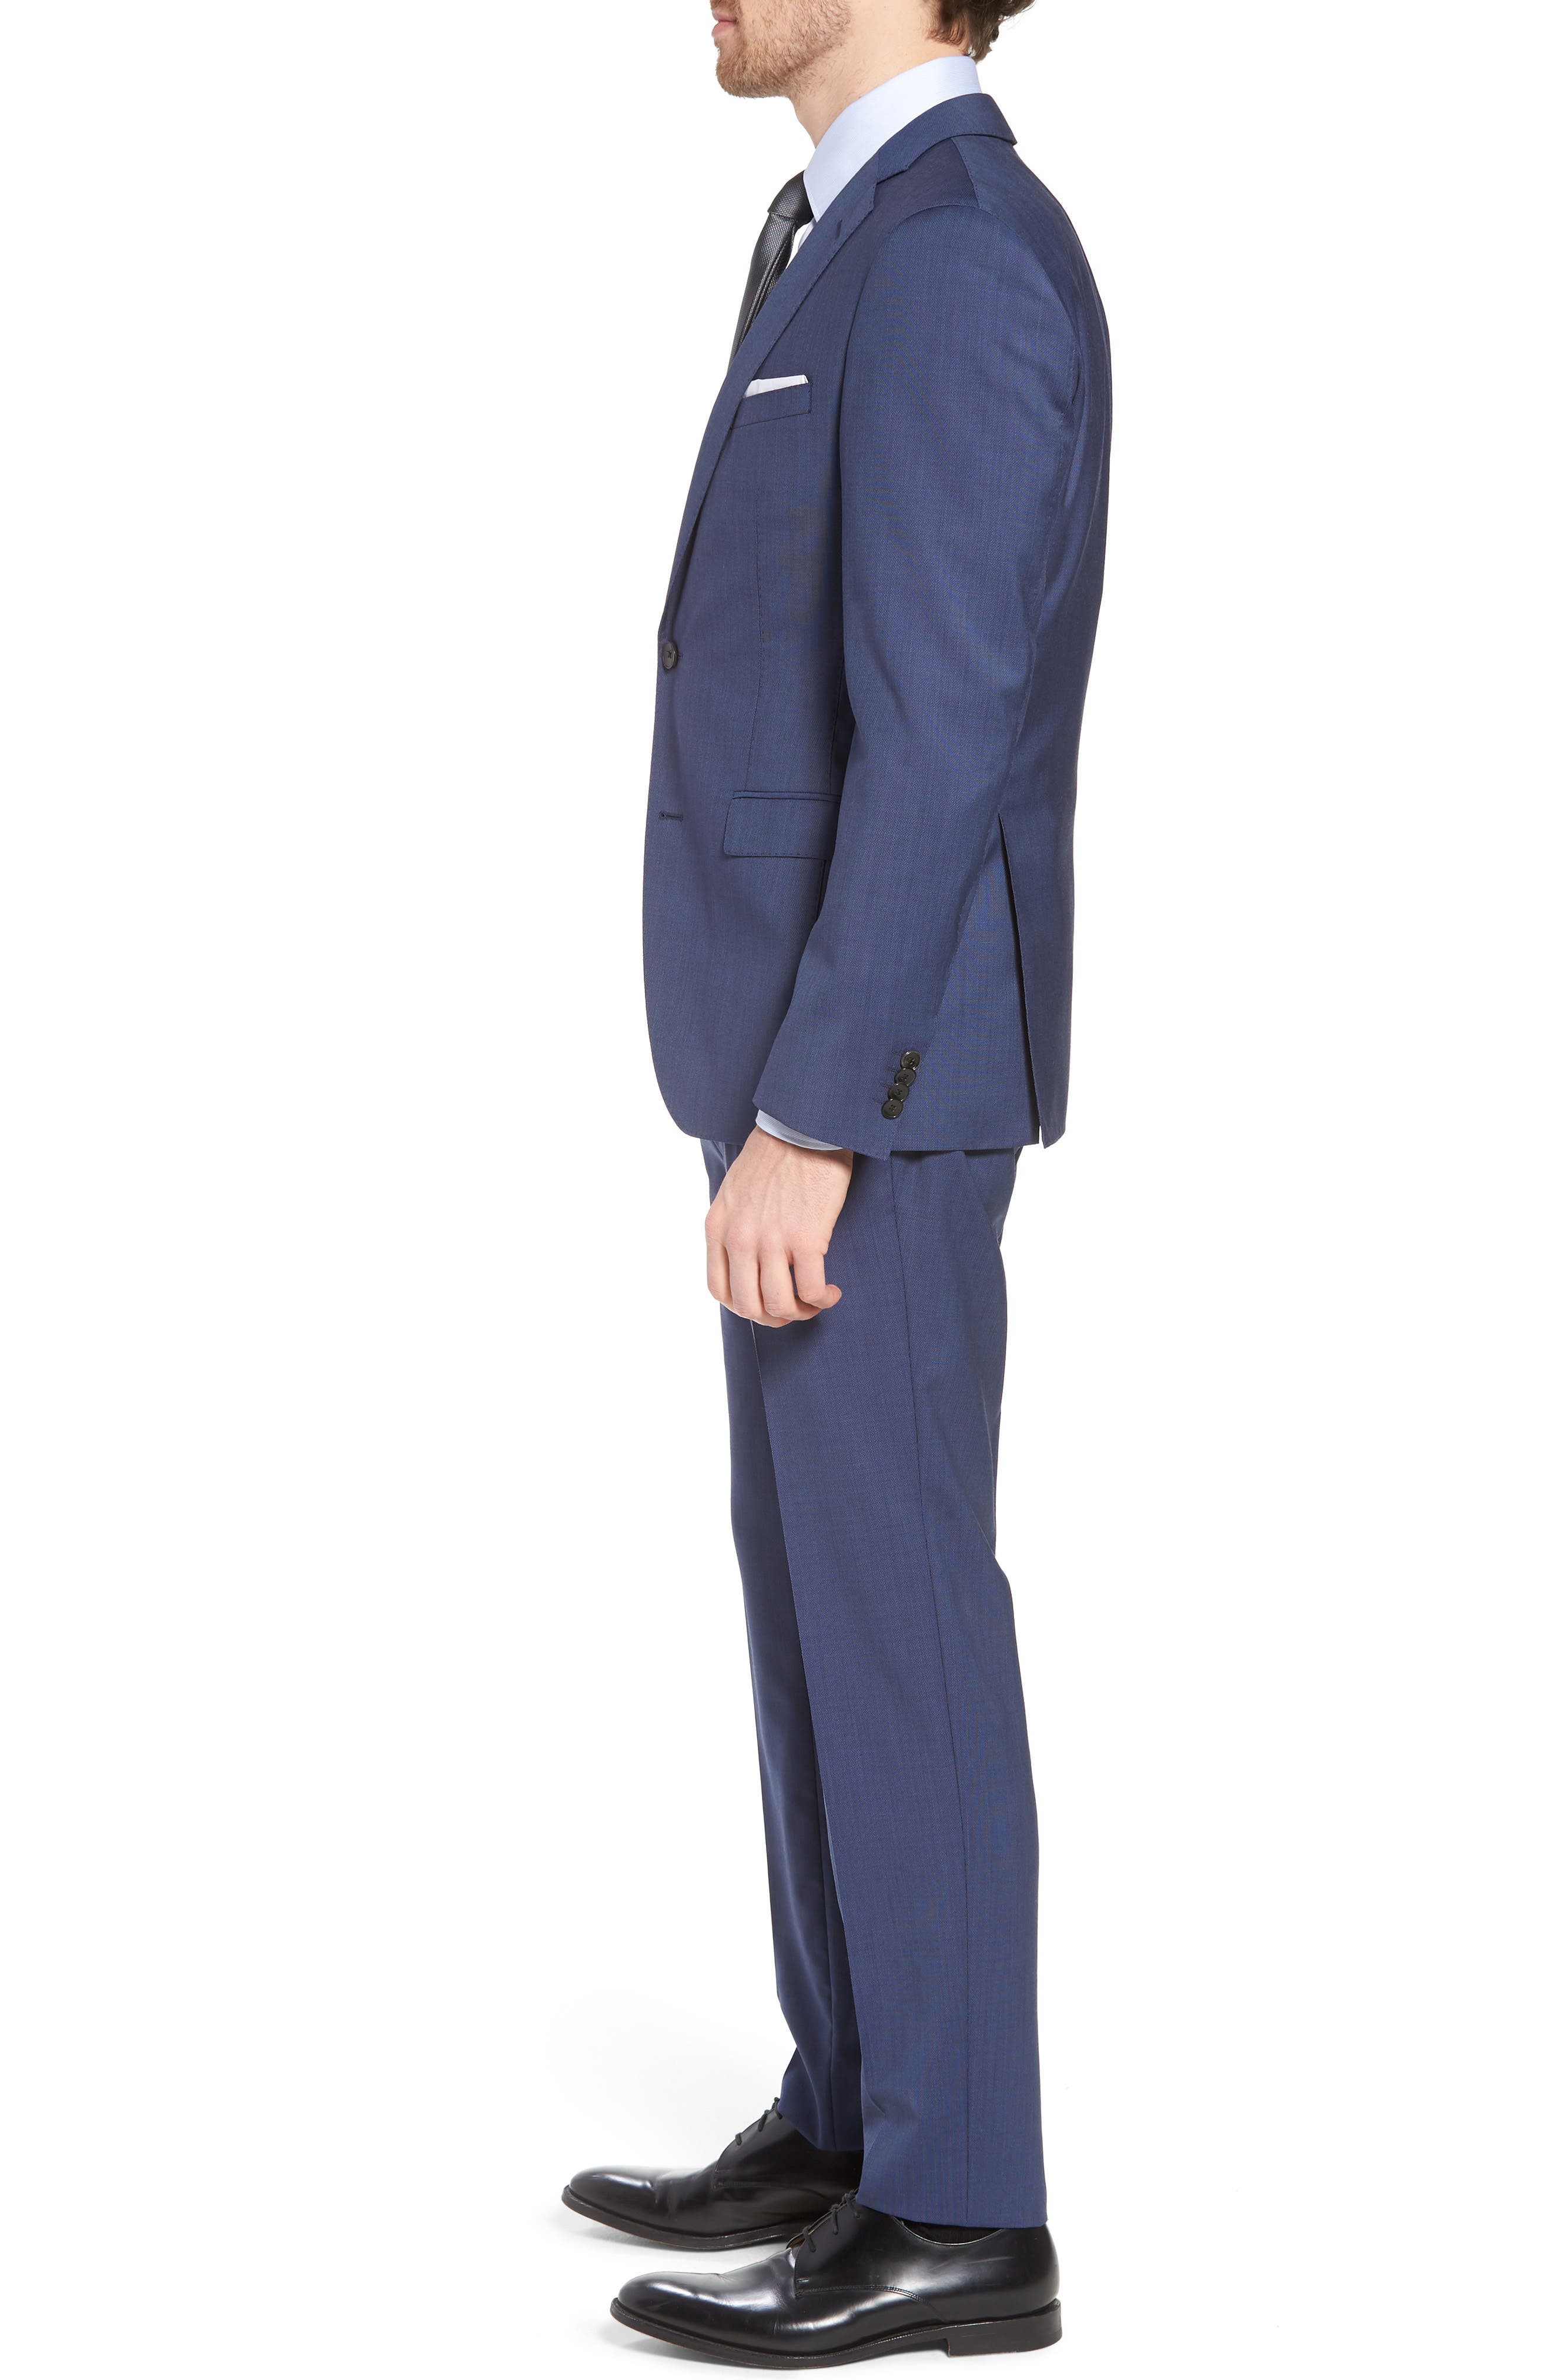 Reyno/Wave Extra Trim Fit Solid Wool Suit,                             Alternate thumbnail 3, color,                             Medium Blue